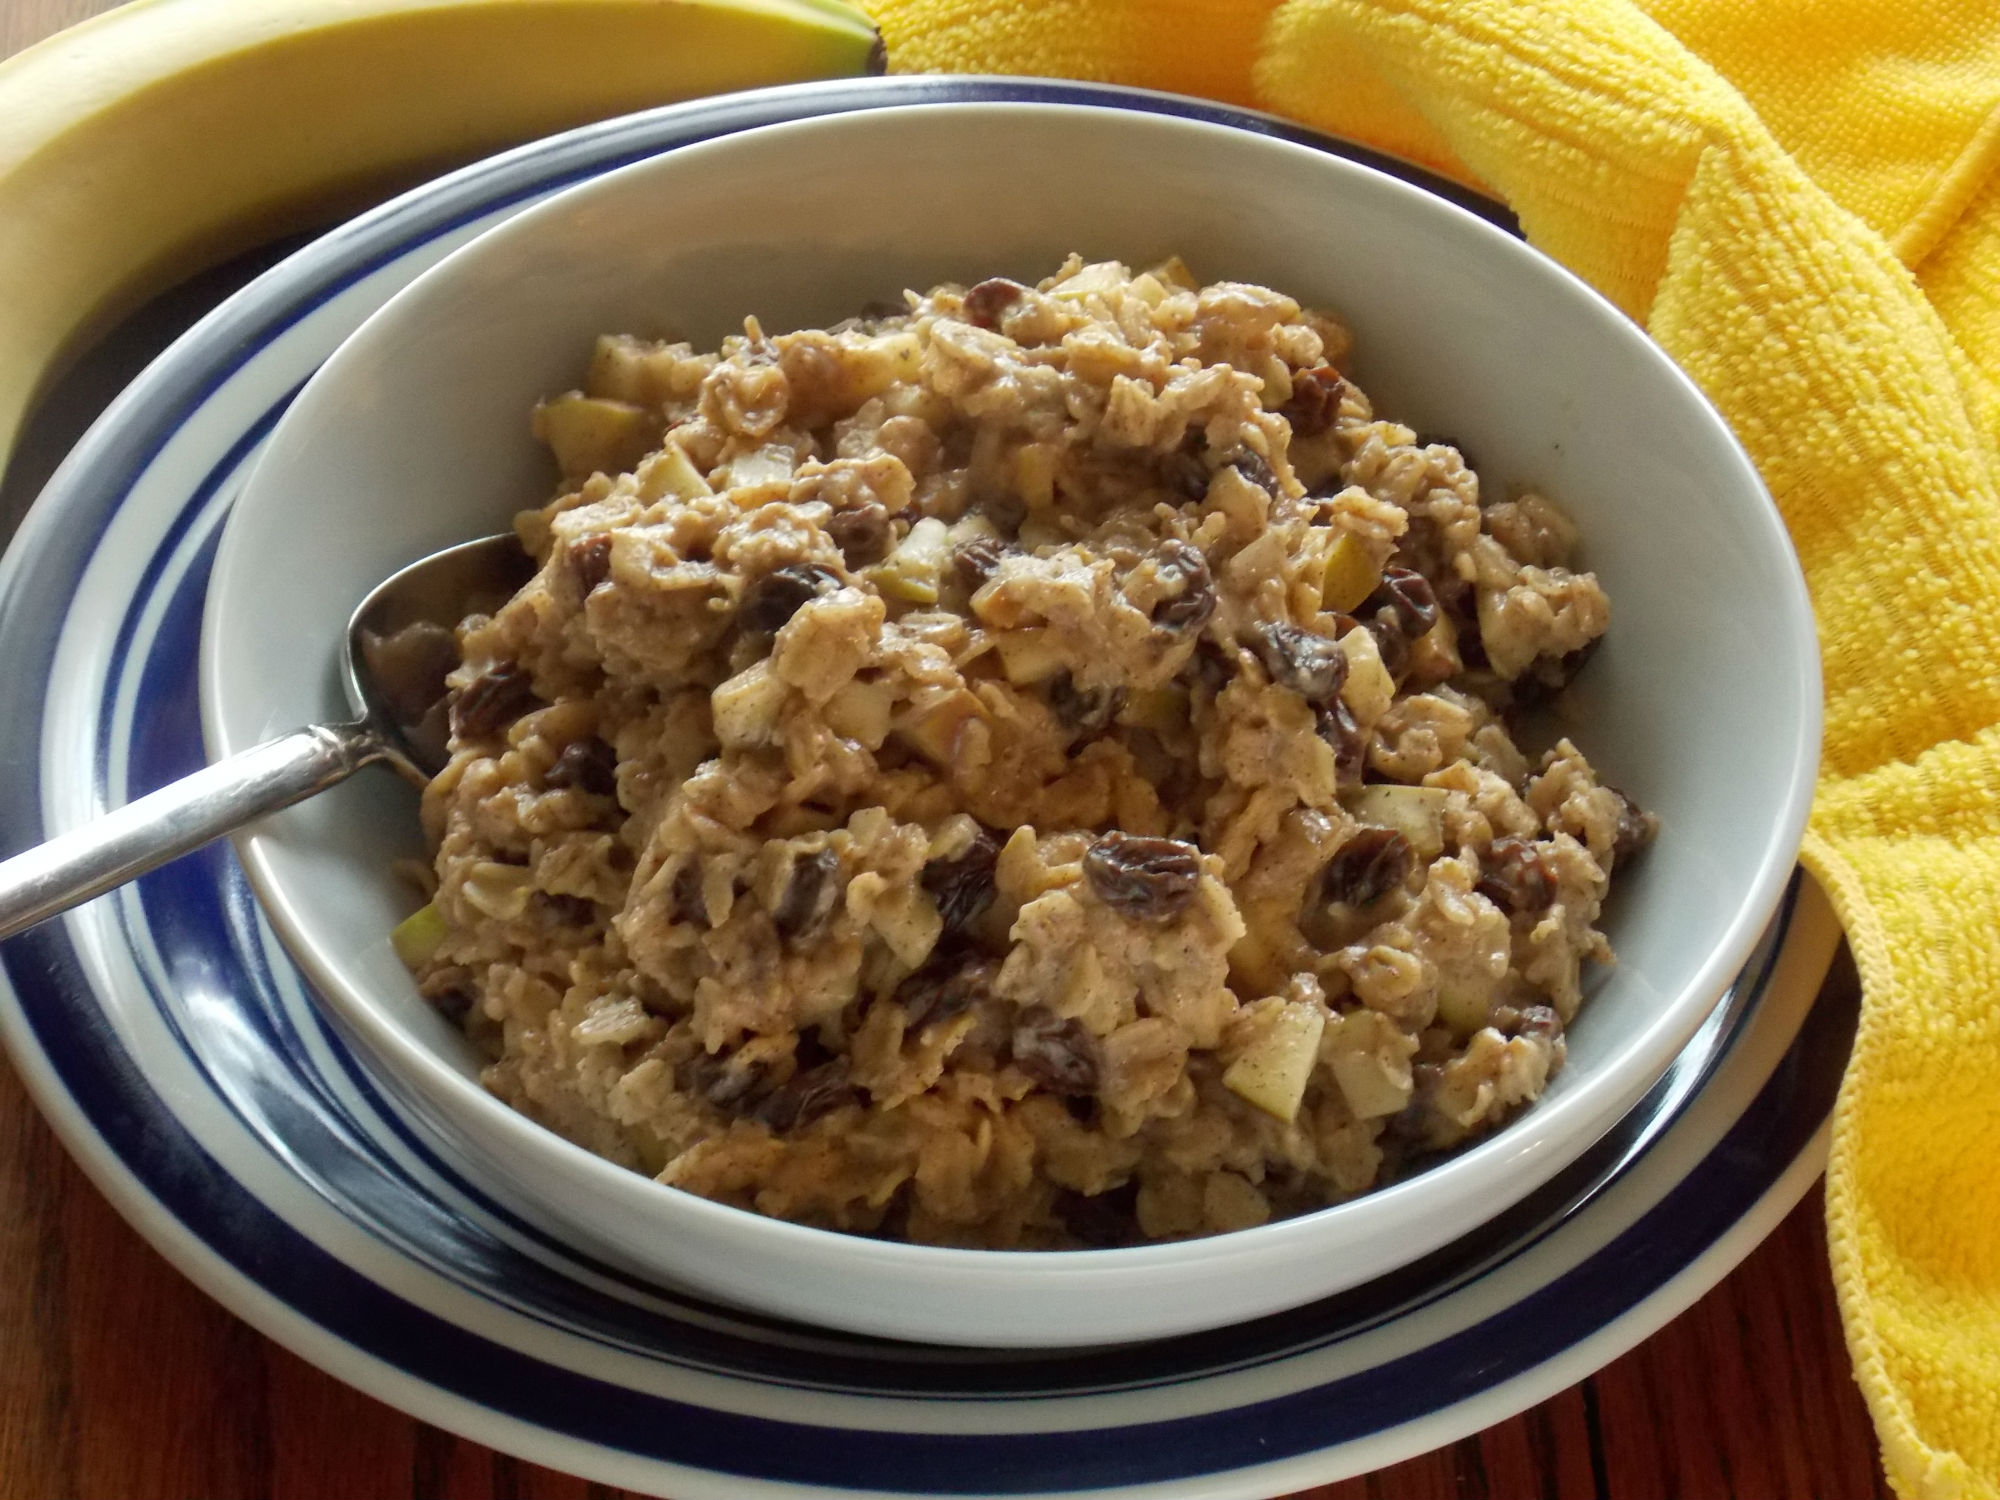 Cinnamon Raisin Oatmeal